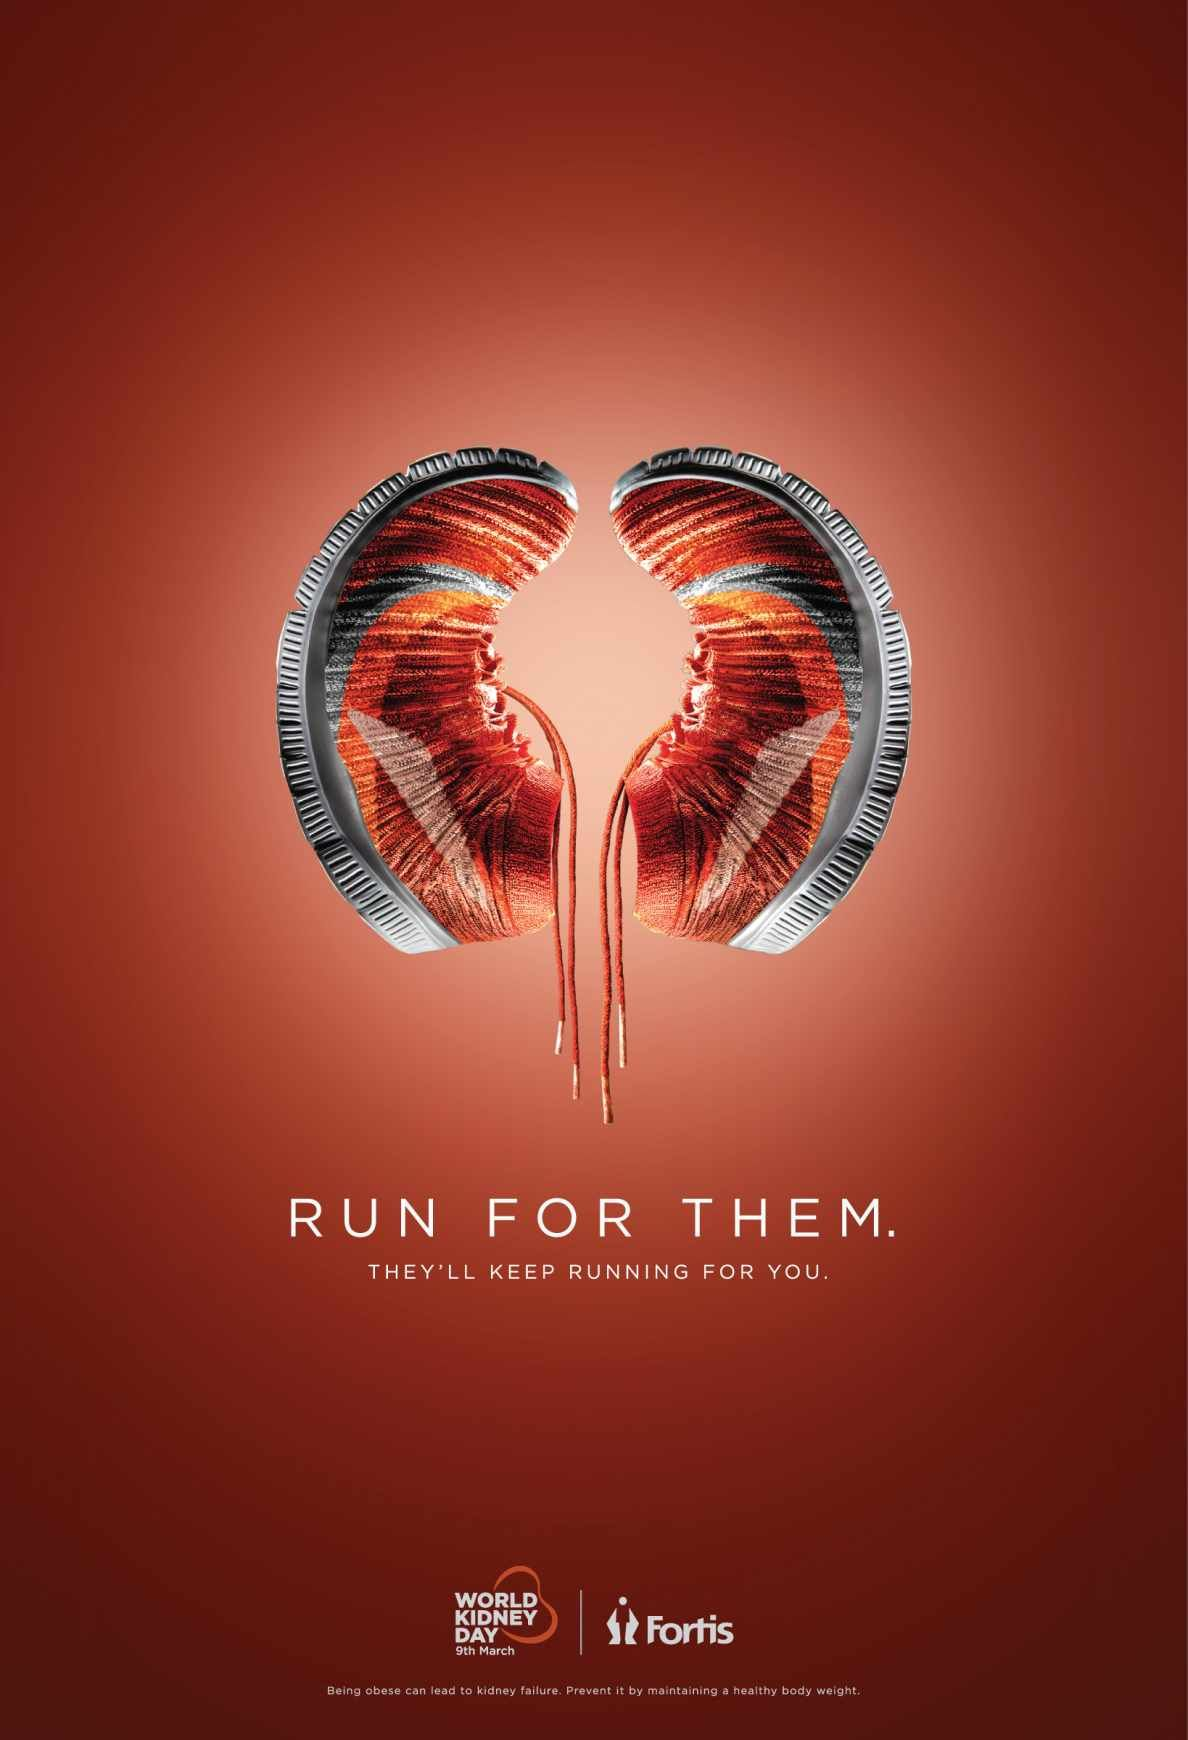 Fortis World Kidney Day Shoes Ads Creative Healthcare Advertising Print Ads